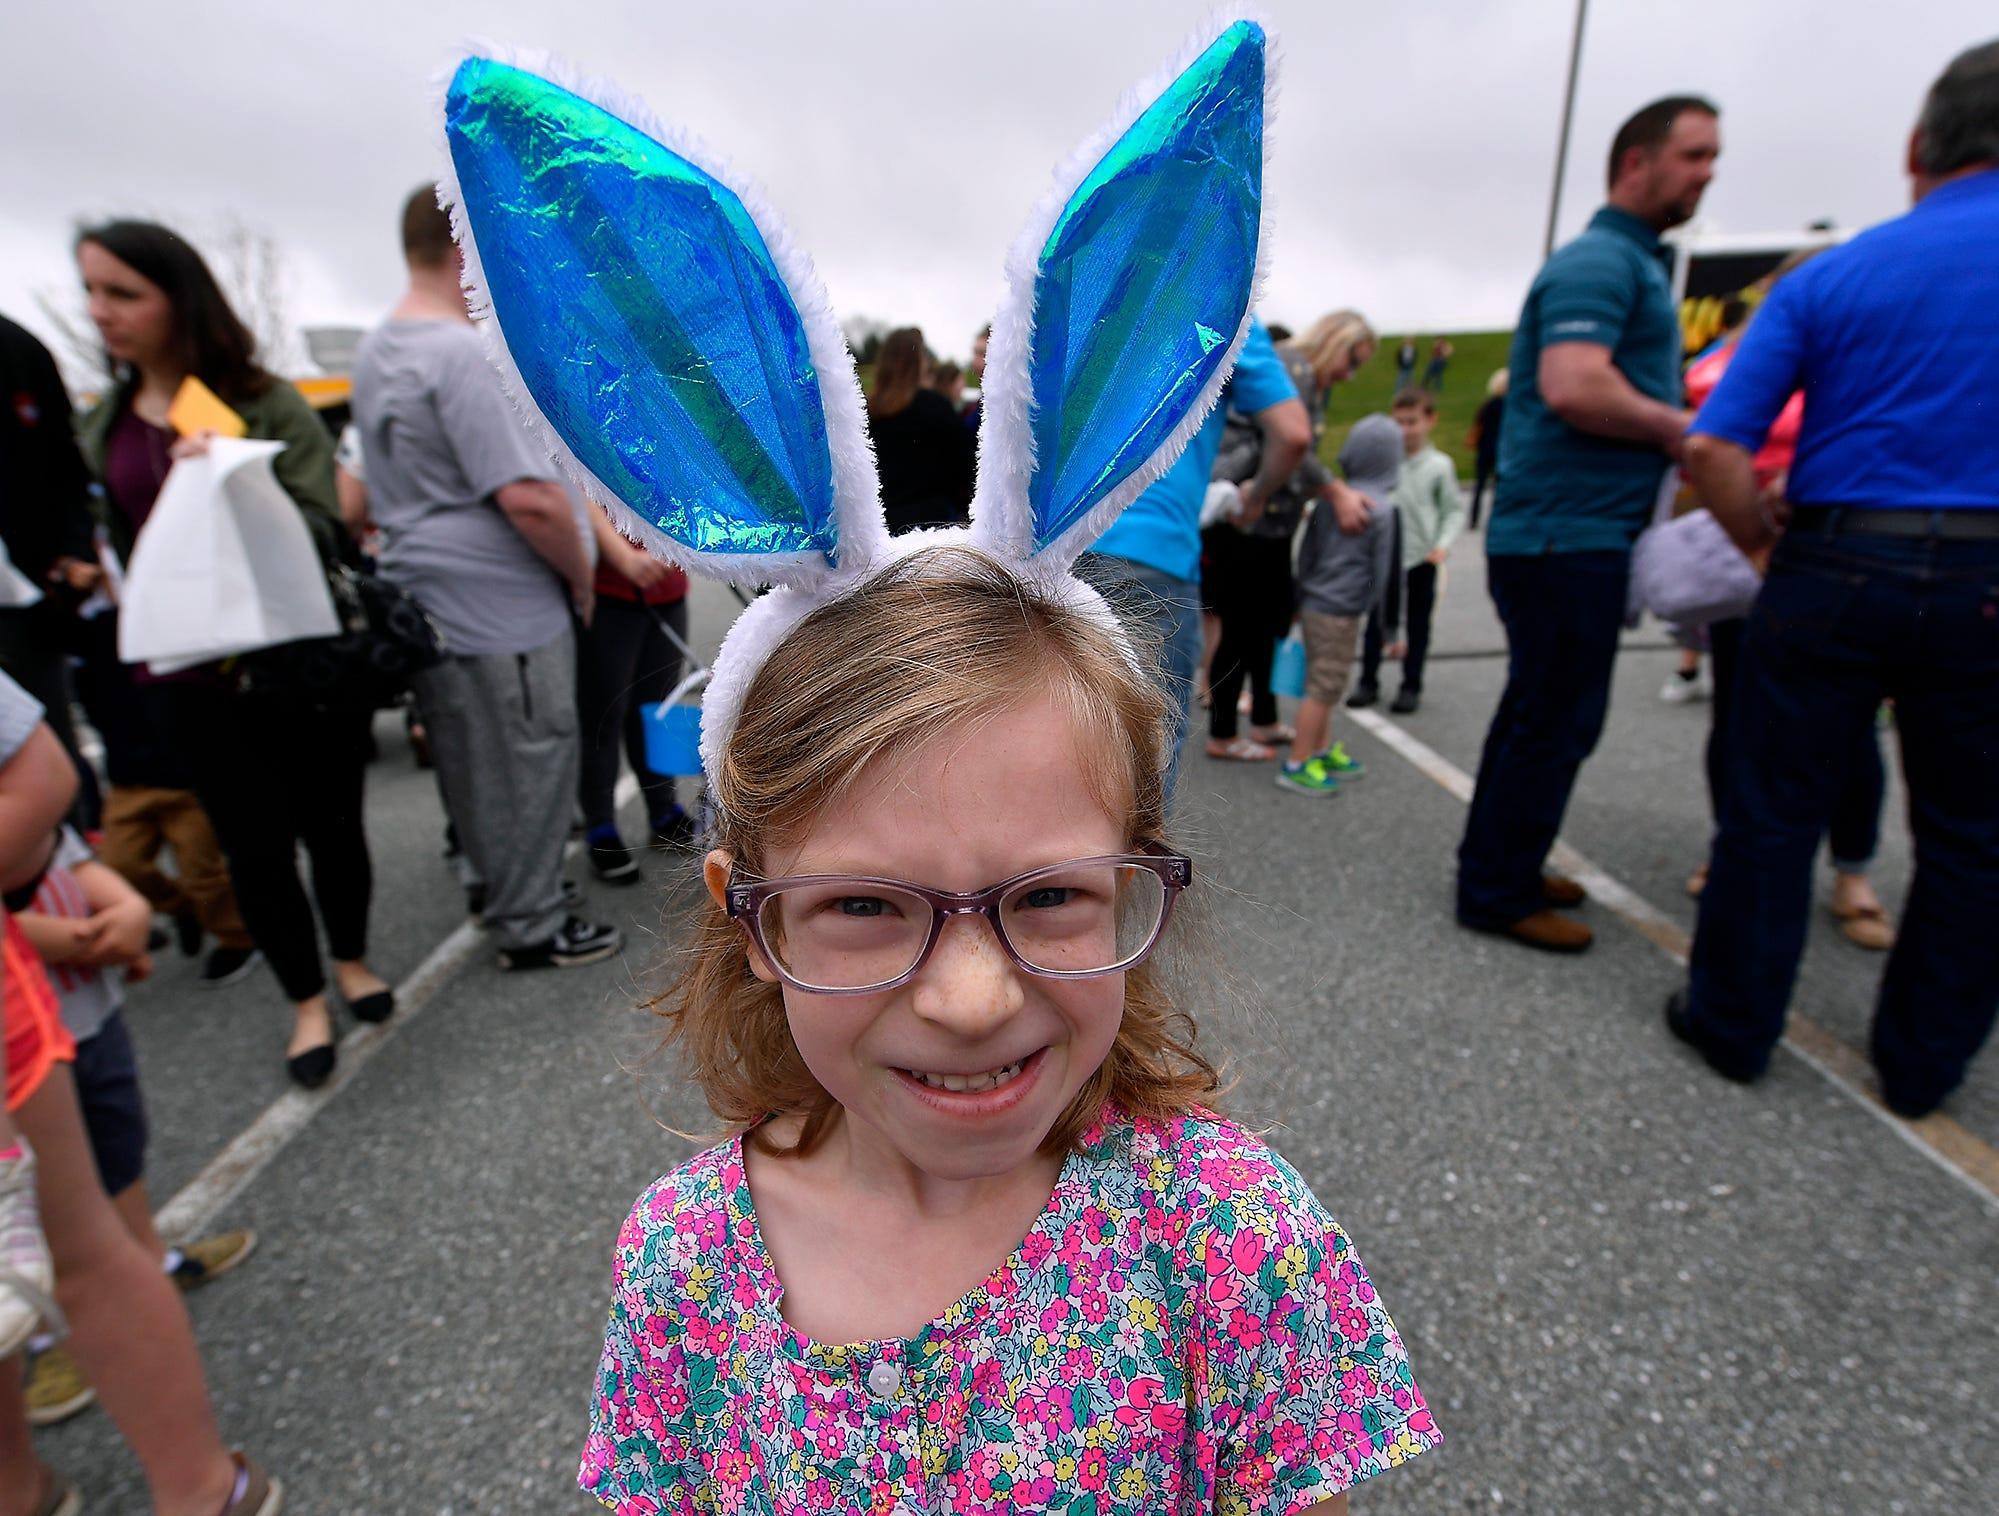 Sophie Amspacker, 6 of  York New Salem, wears bunny ears while waiting for the start of the first ever Easter Egg Hunt at Genesis Church in Seven Valleys, Sunday, April 14, 2019. More than 2,000 people participated in the event.John A. Pavoncello photo